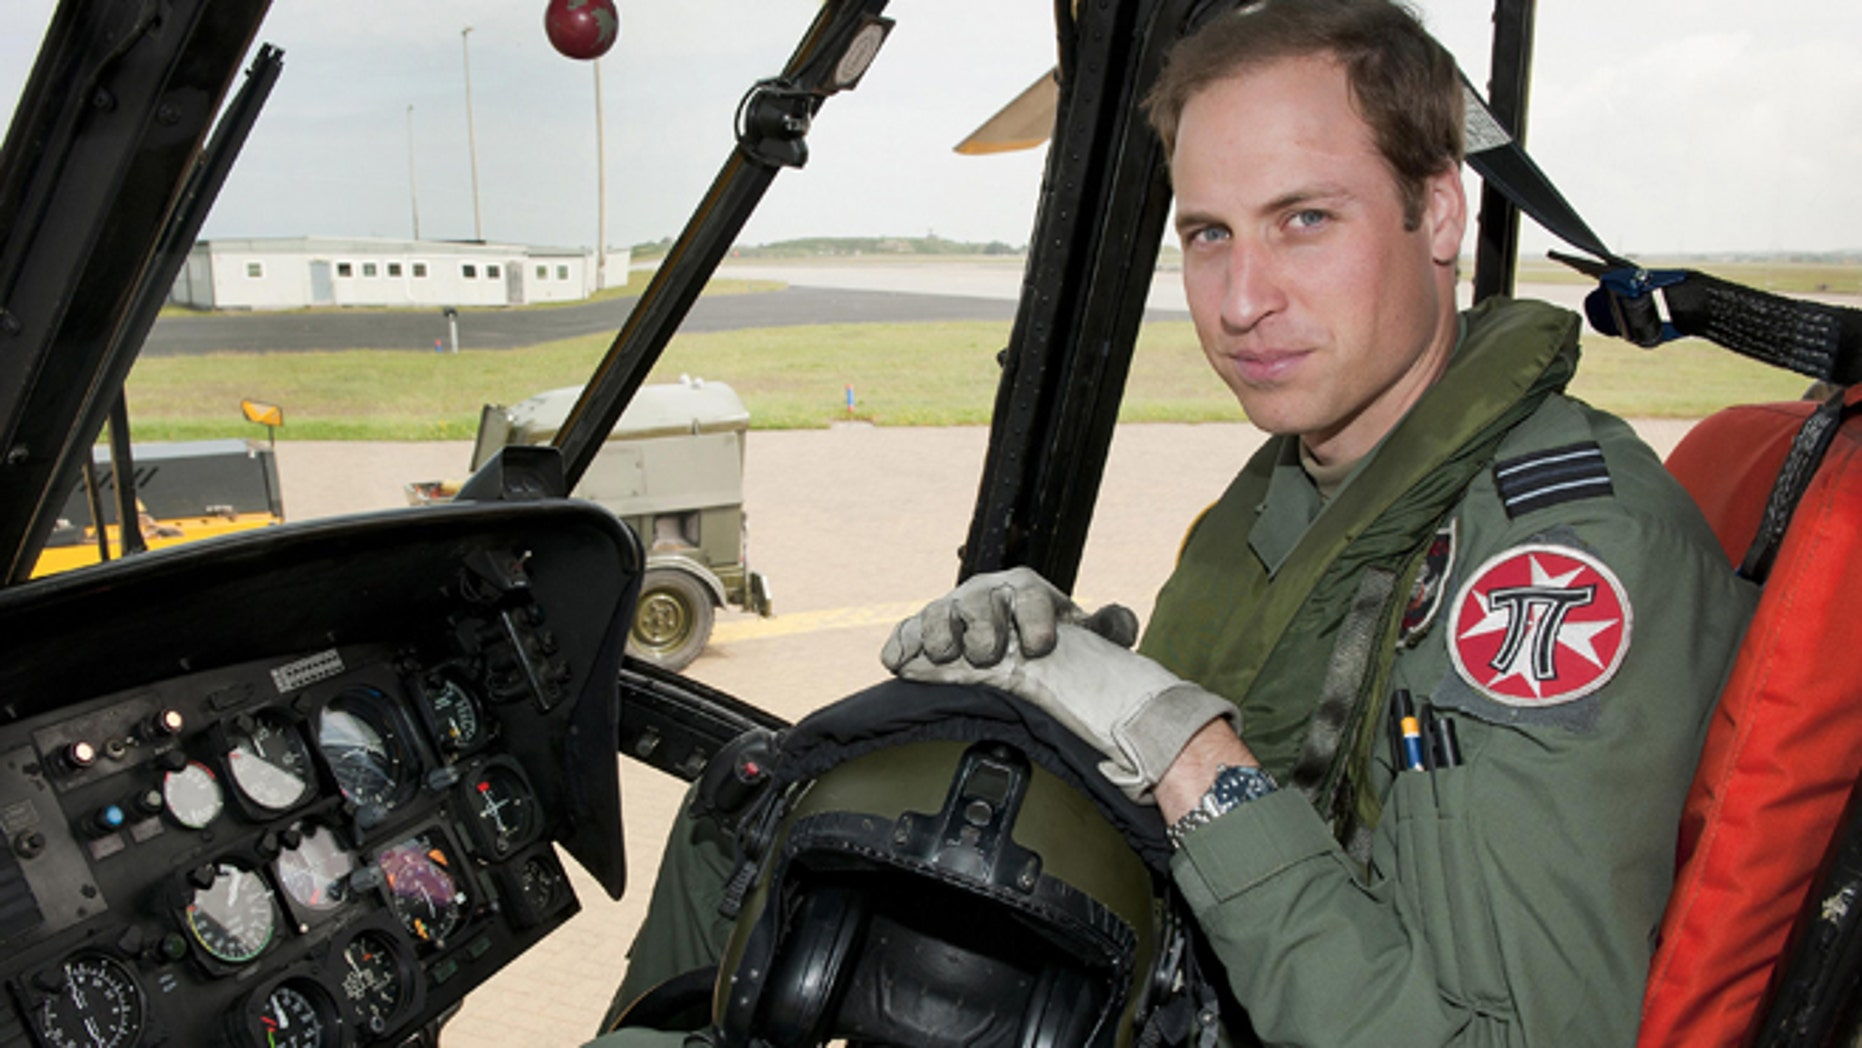 June 1, 2012: In this file photo released by Britain's Ministry of Defence , Britain's Prince William sits in the cockpit of a helicopter at RAF Valley in Anglesey Wales.